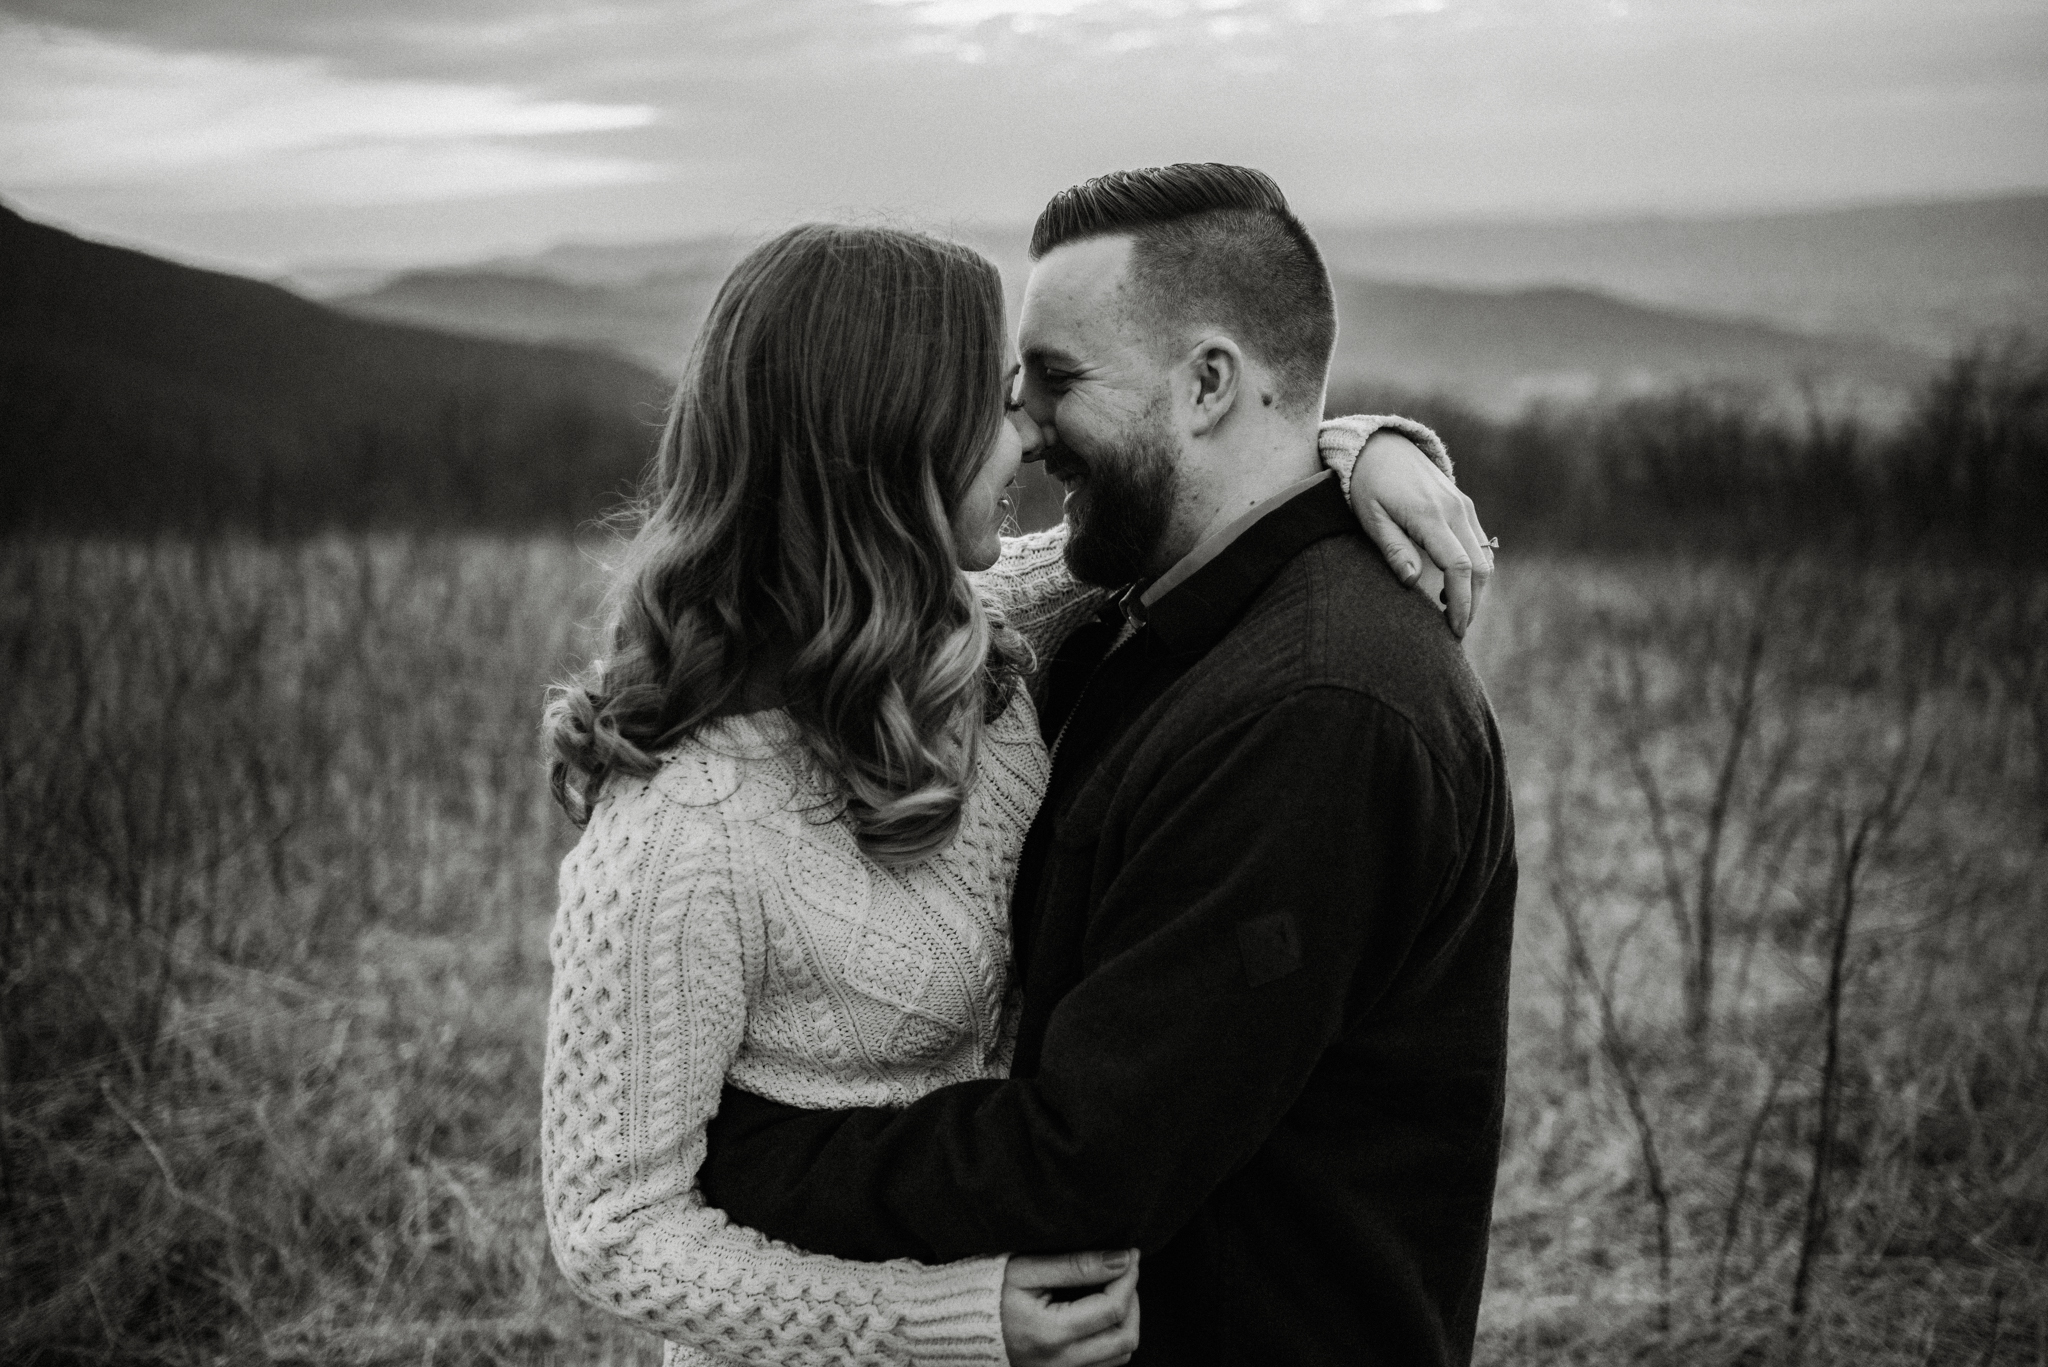 Nicole and Victor - Shenandoah National Park Engagement Photography - Blue Ridge Mountains Adventure Photography - White Sails Creative Photography_41.jpg